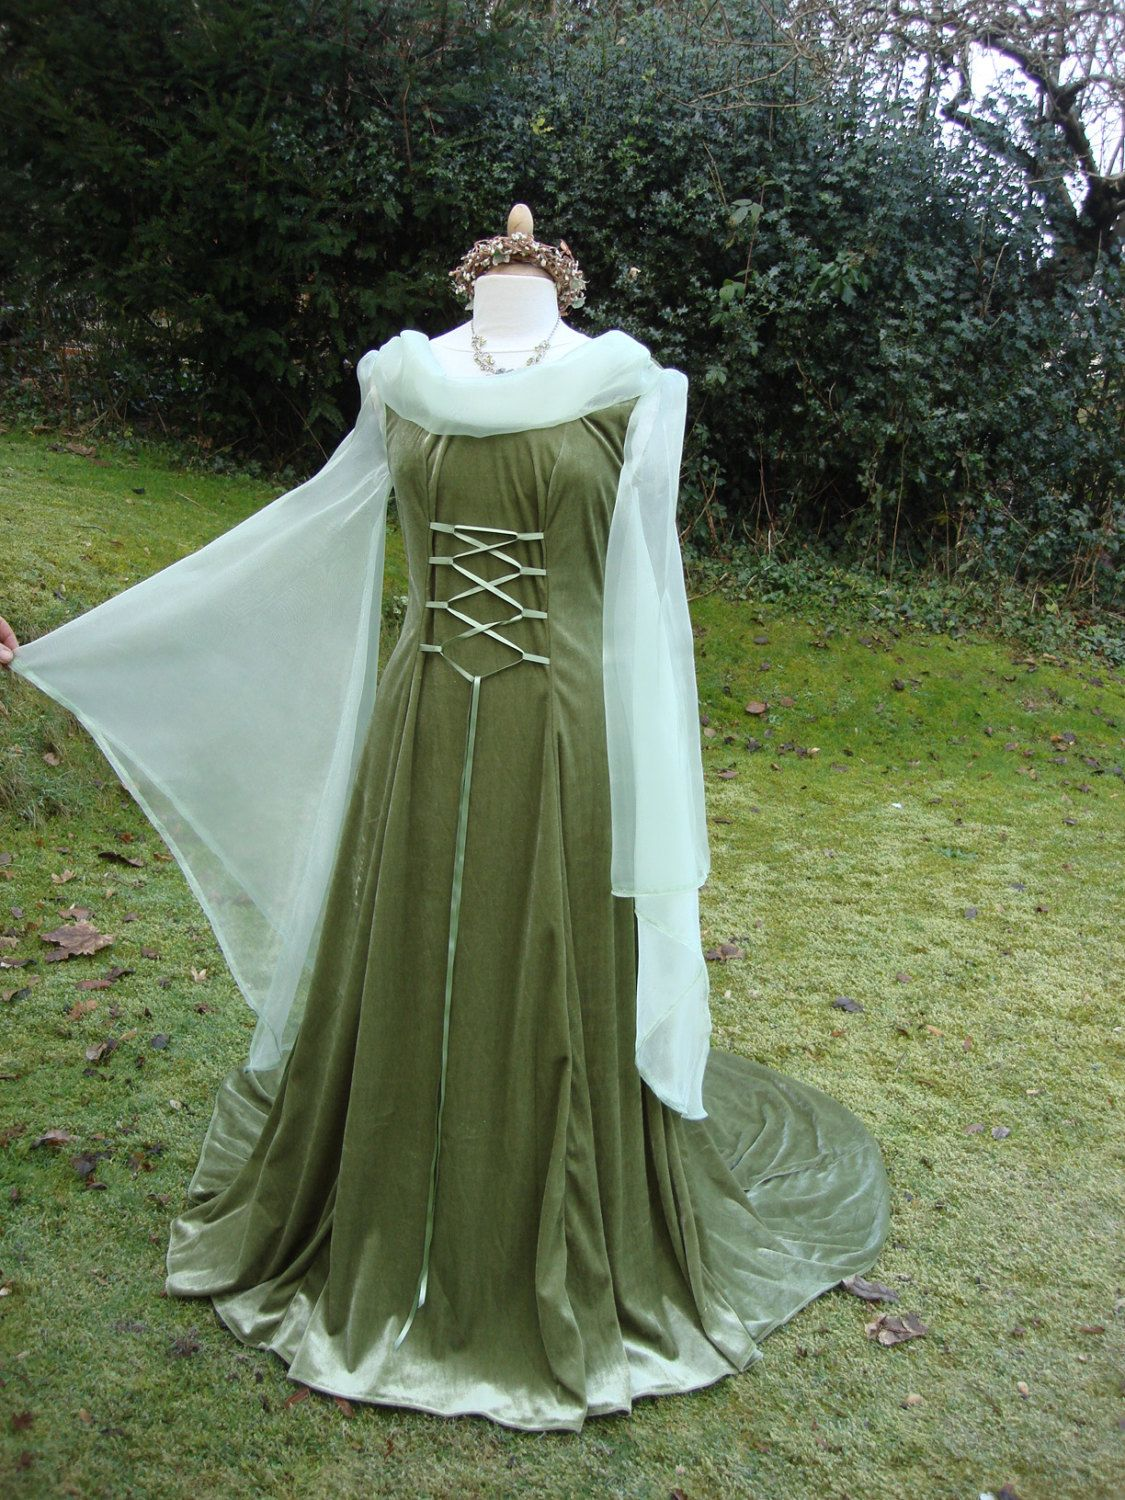 Fantasy Gown Renaissance Meval Pagan Celtic Handfasting Dress 8 To 14 By Wytchhaze On